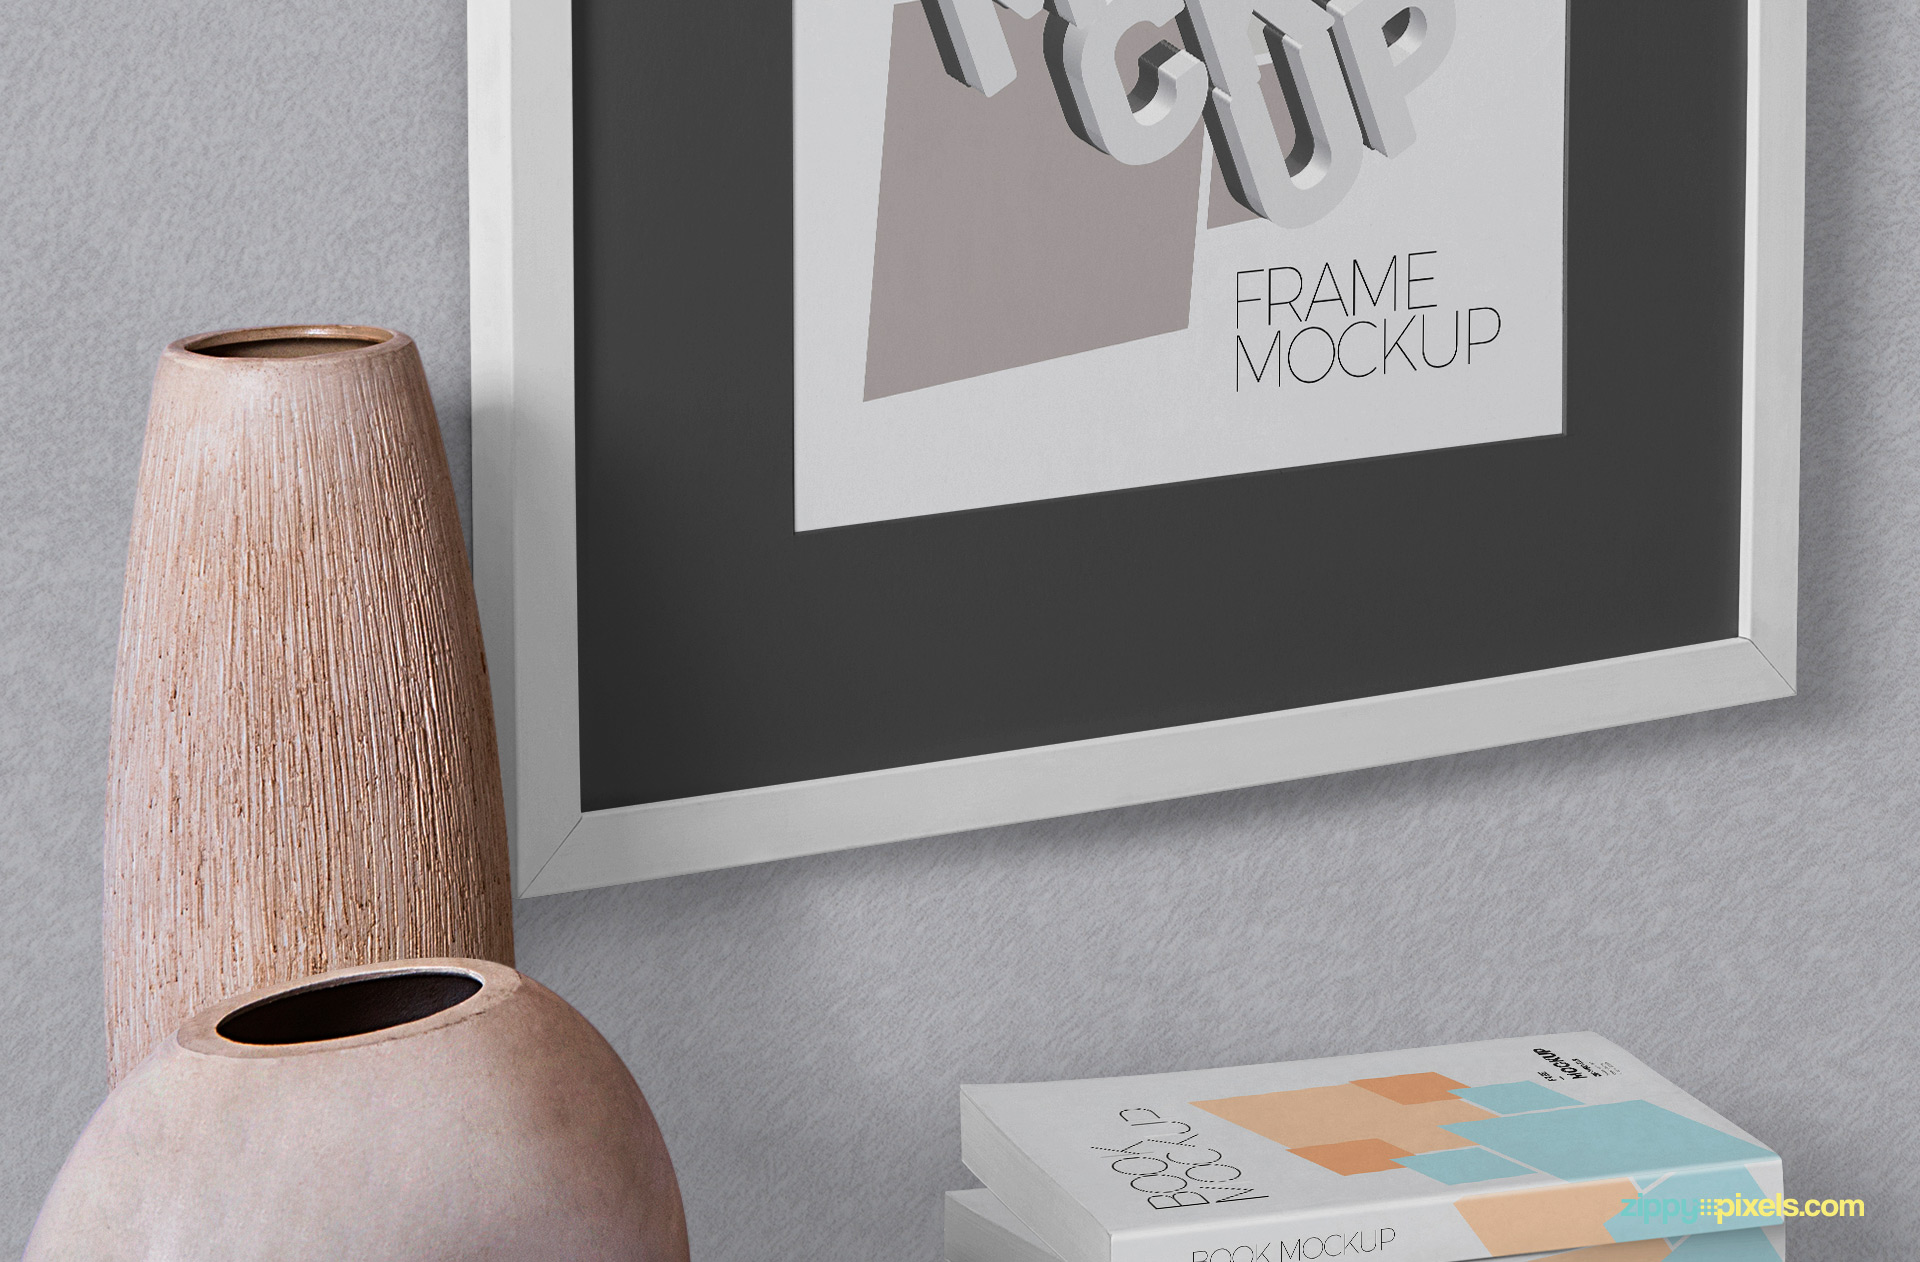 Customizable books mockup and vase.